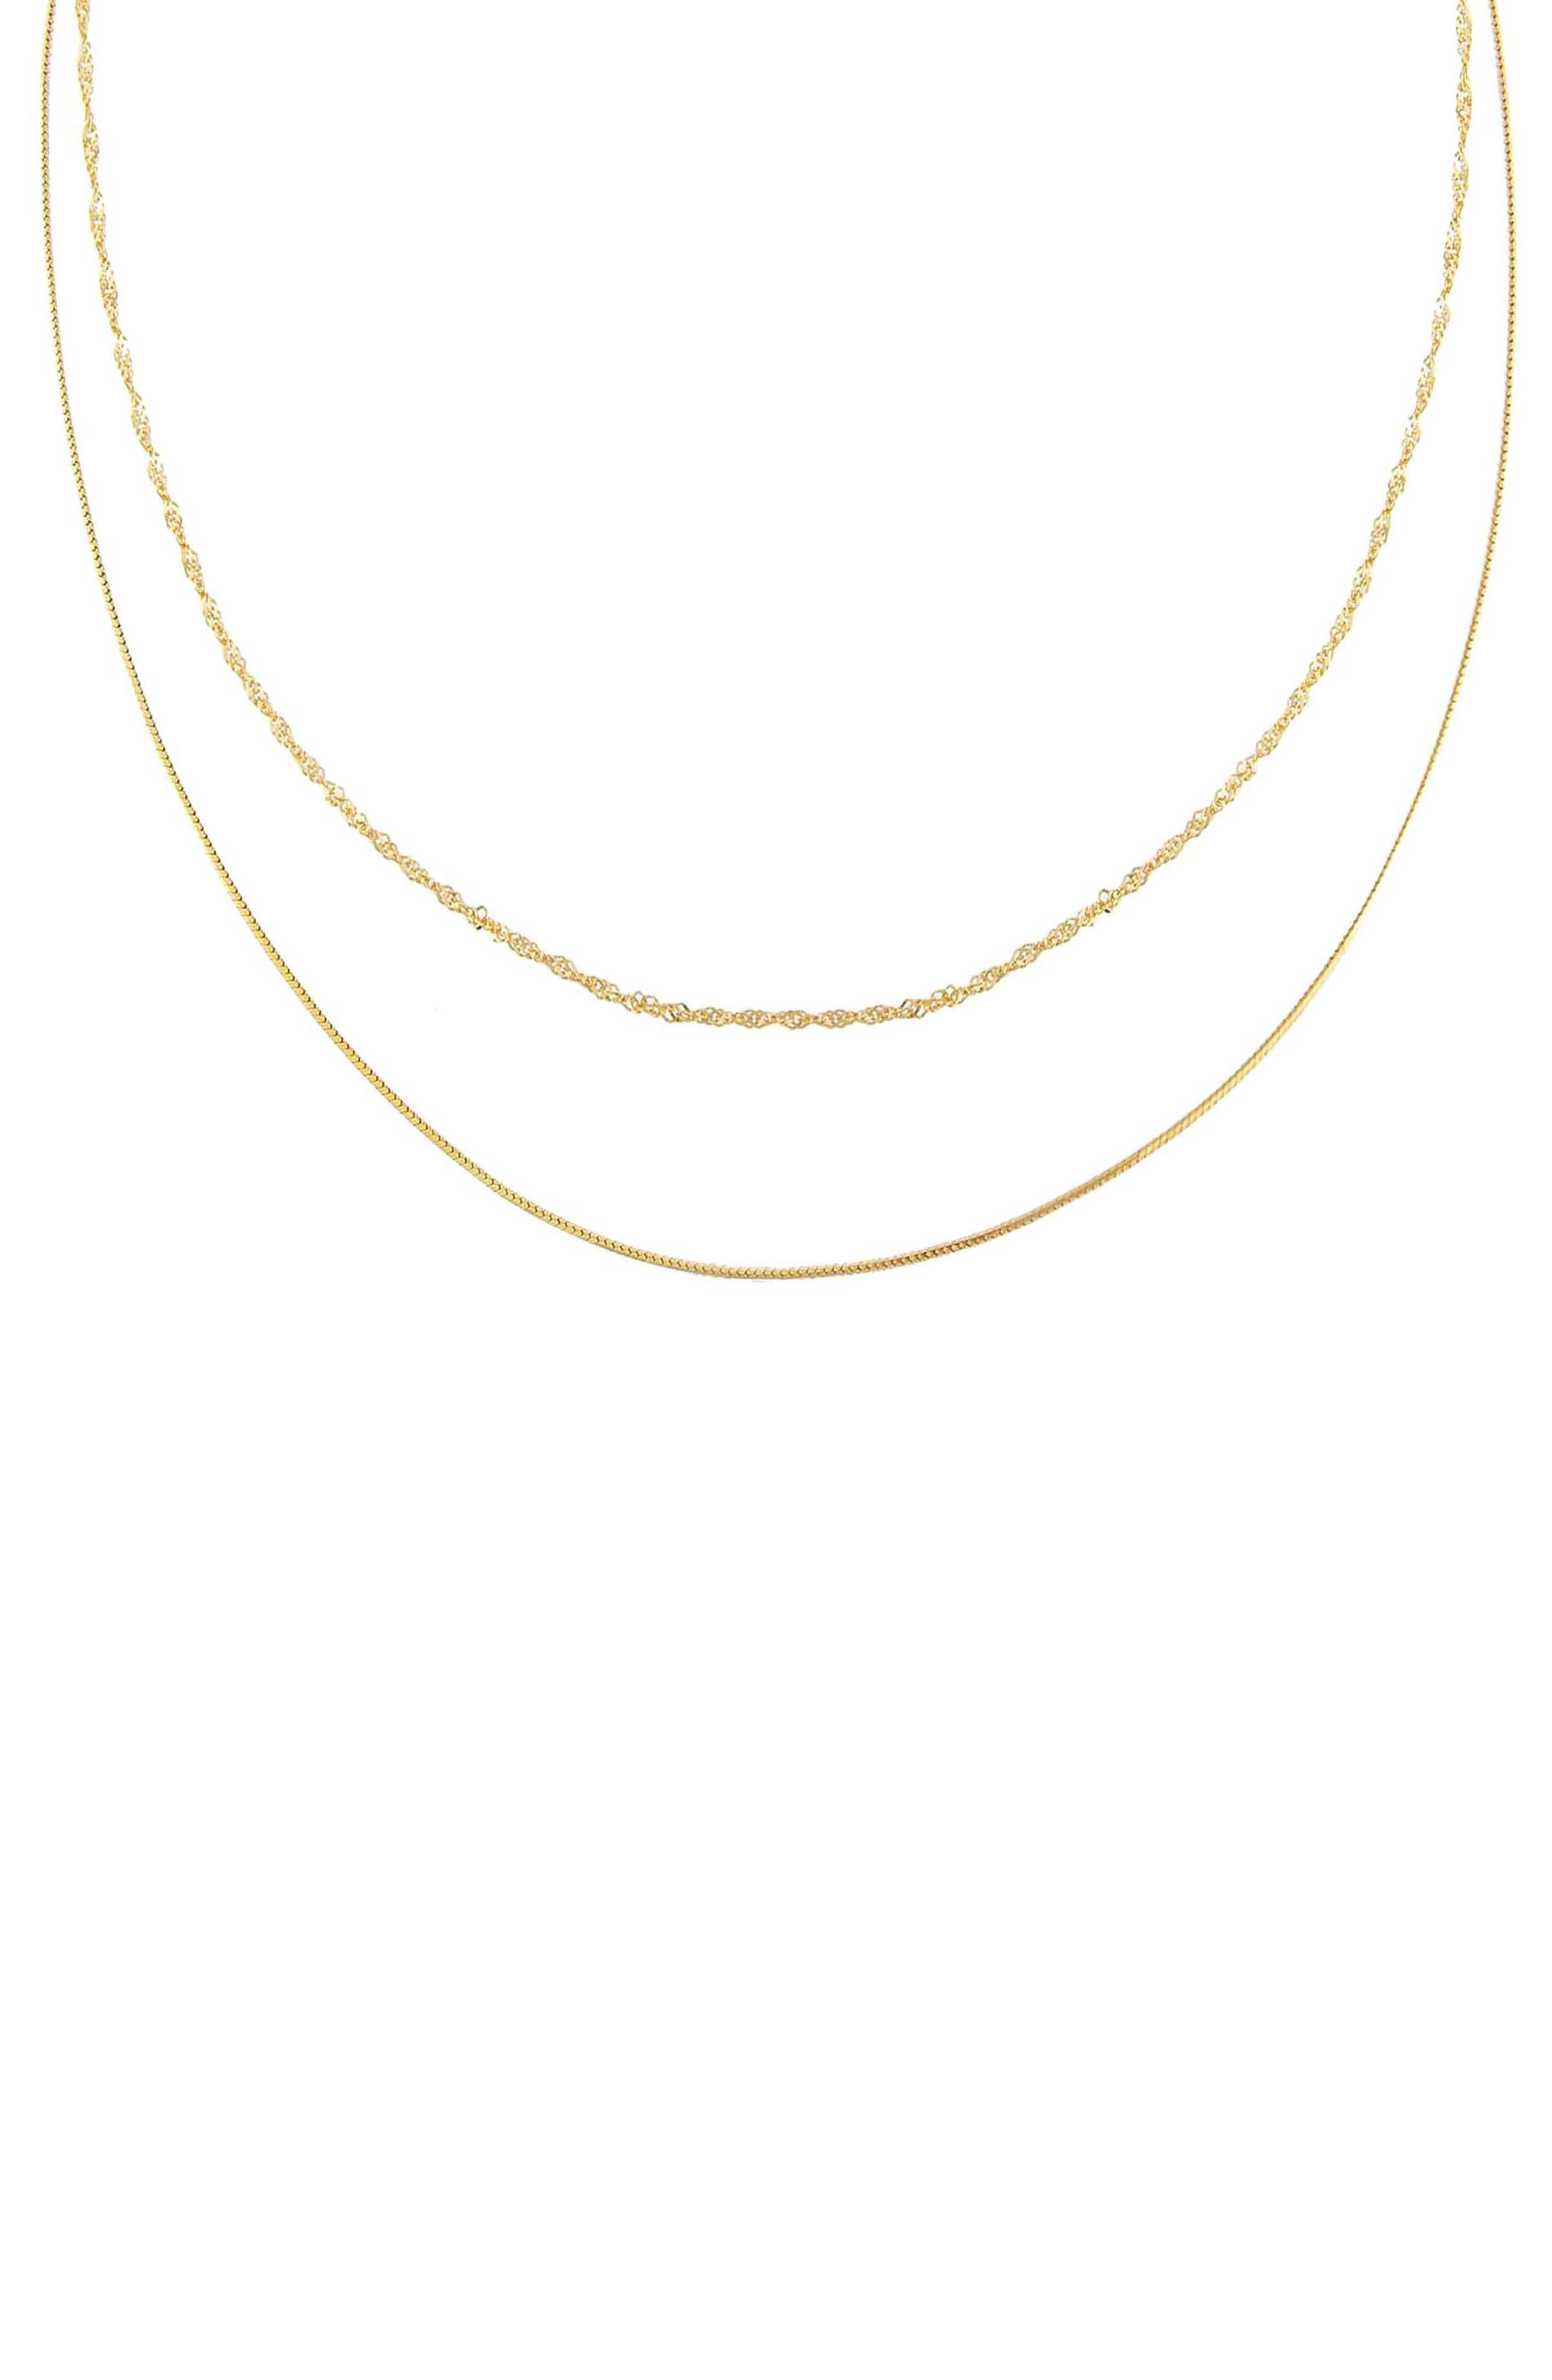 Women's Adina's Jewels Mixed Double Chain Necklace